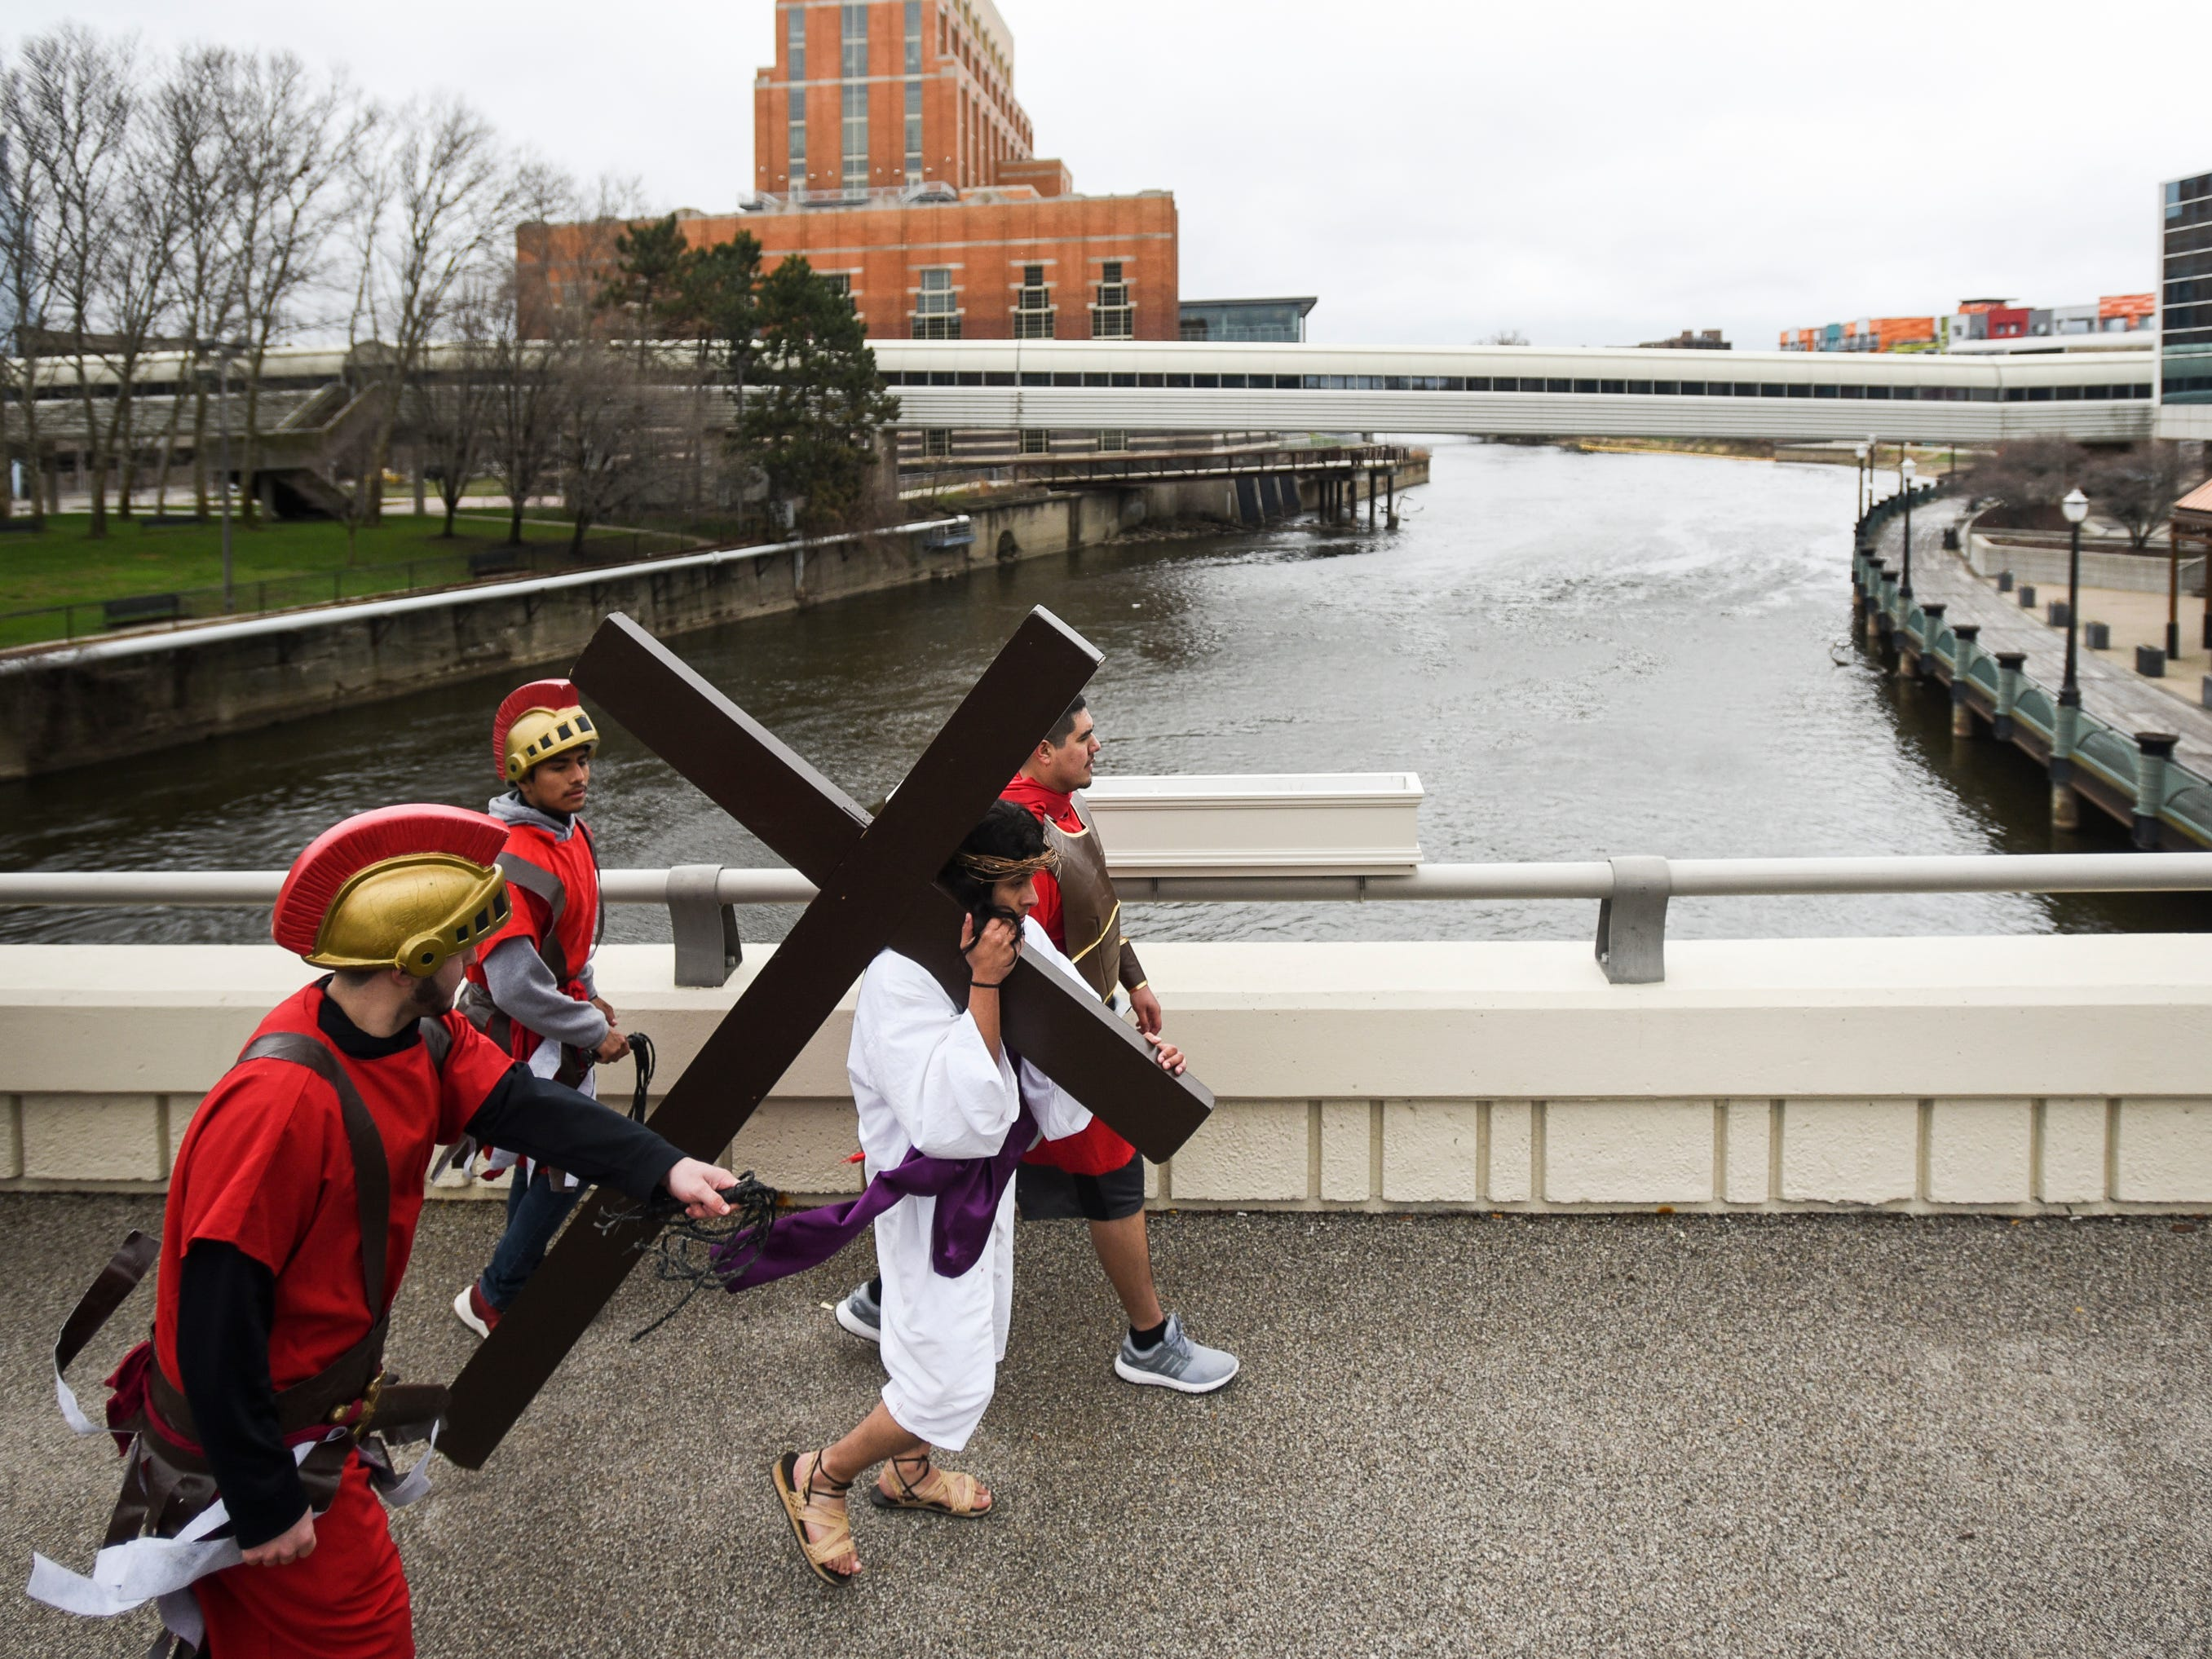 """David Ponce, portraying Jesus, carries a cross through downtown Lansing along Michigan Avenue over the Grand River as part of Cristo Rey's """"Stations of the Cross,"""" Friday, April 19, 2019.  The service started on the steps of the Capitol with the reenactment of Jesus being condemned to death and concluded at the Cristo Rey Community Center with the crucifixion followed by a Good Friday service."""